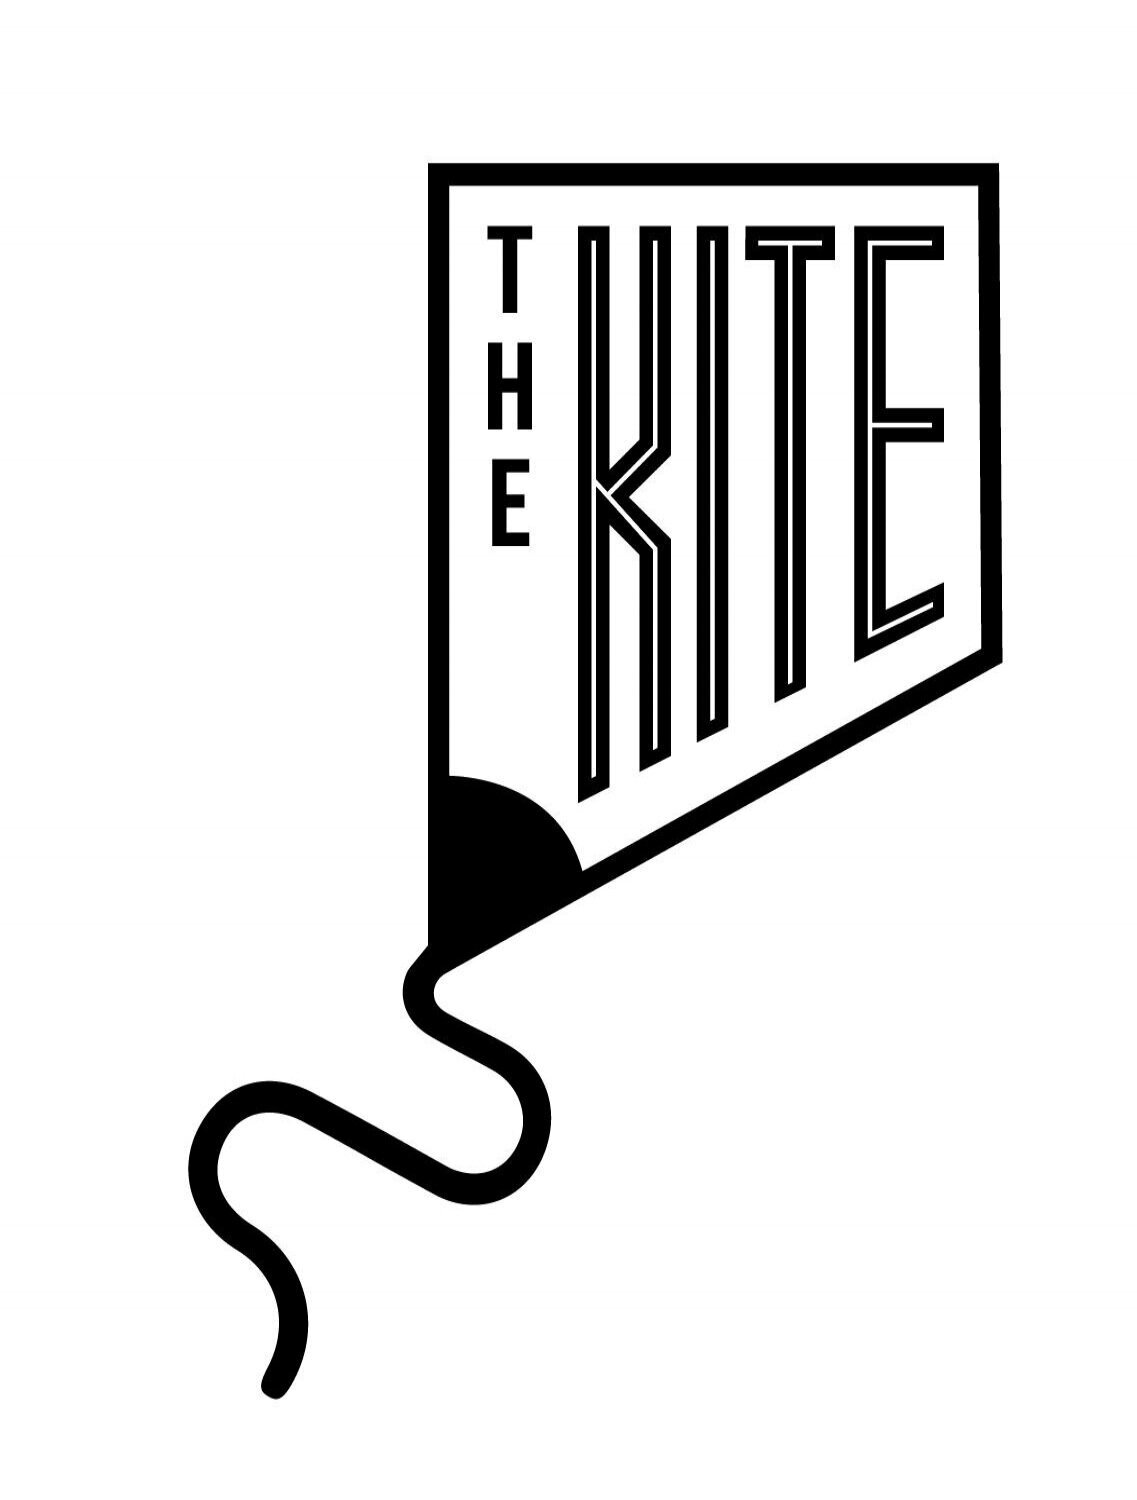 THE KITE ZINE